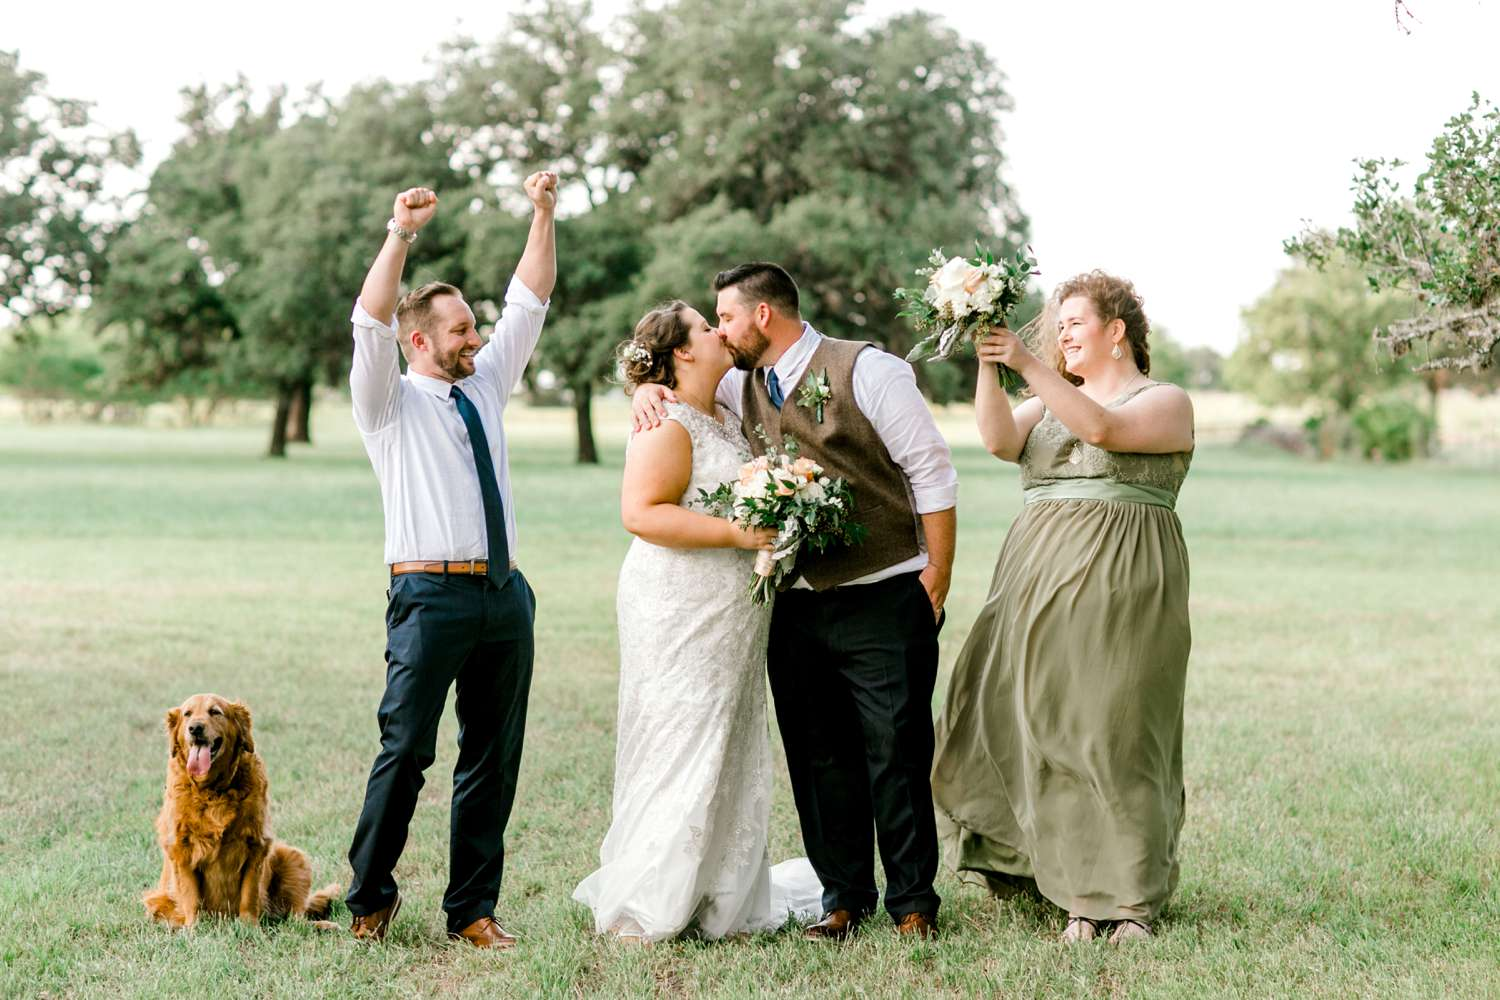 CHELSEA_AND_NICK_ADAMS_FREDRICKSBURG_WEDDING_ALLEEJ0089.jpg